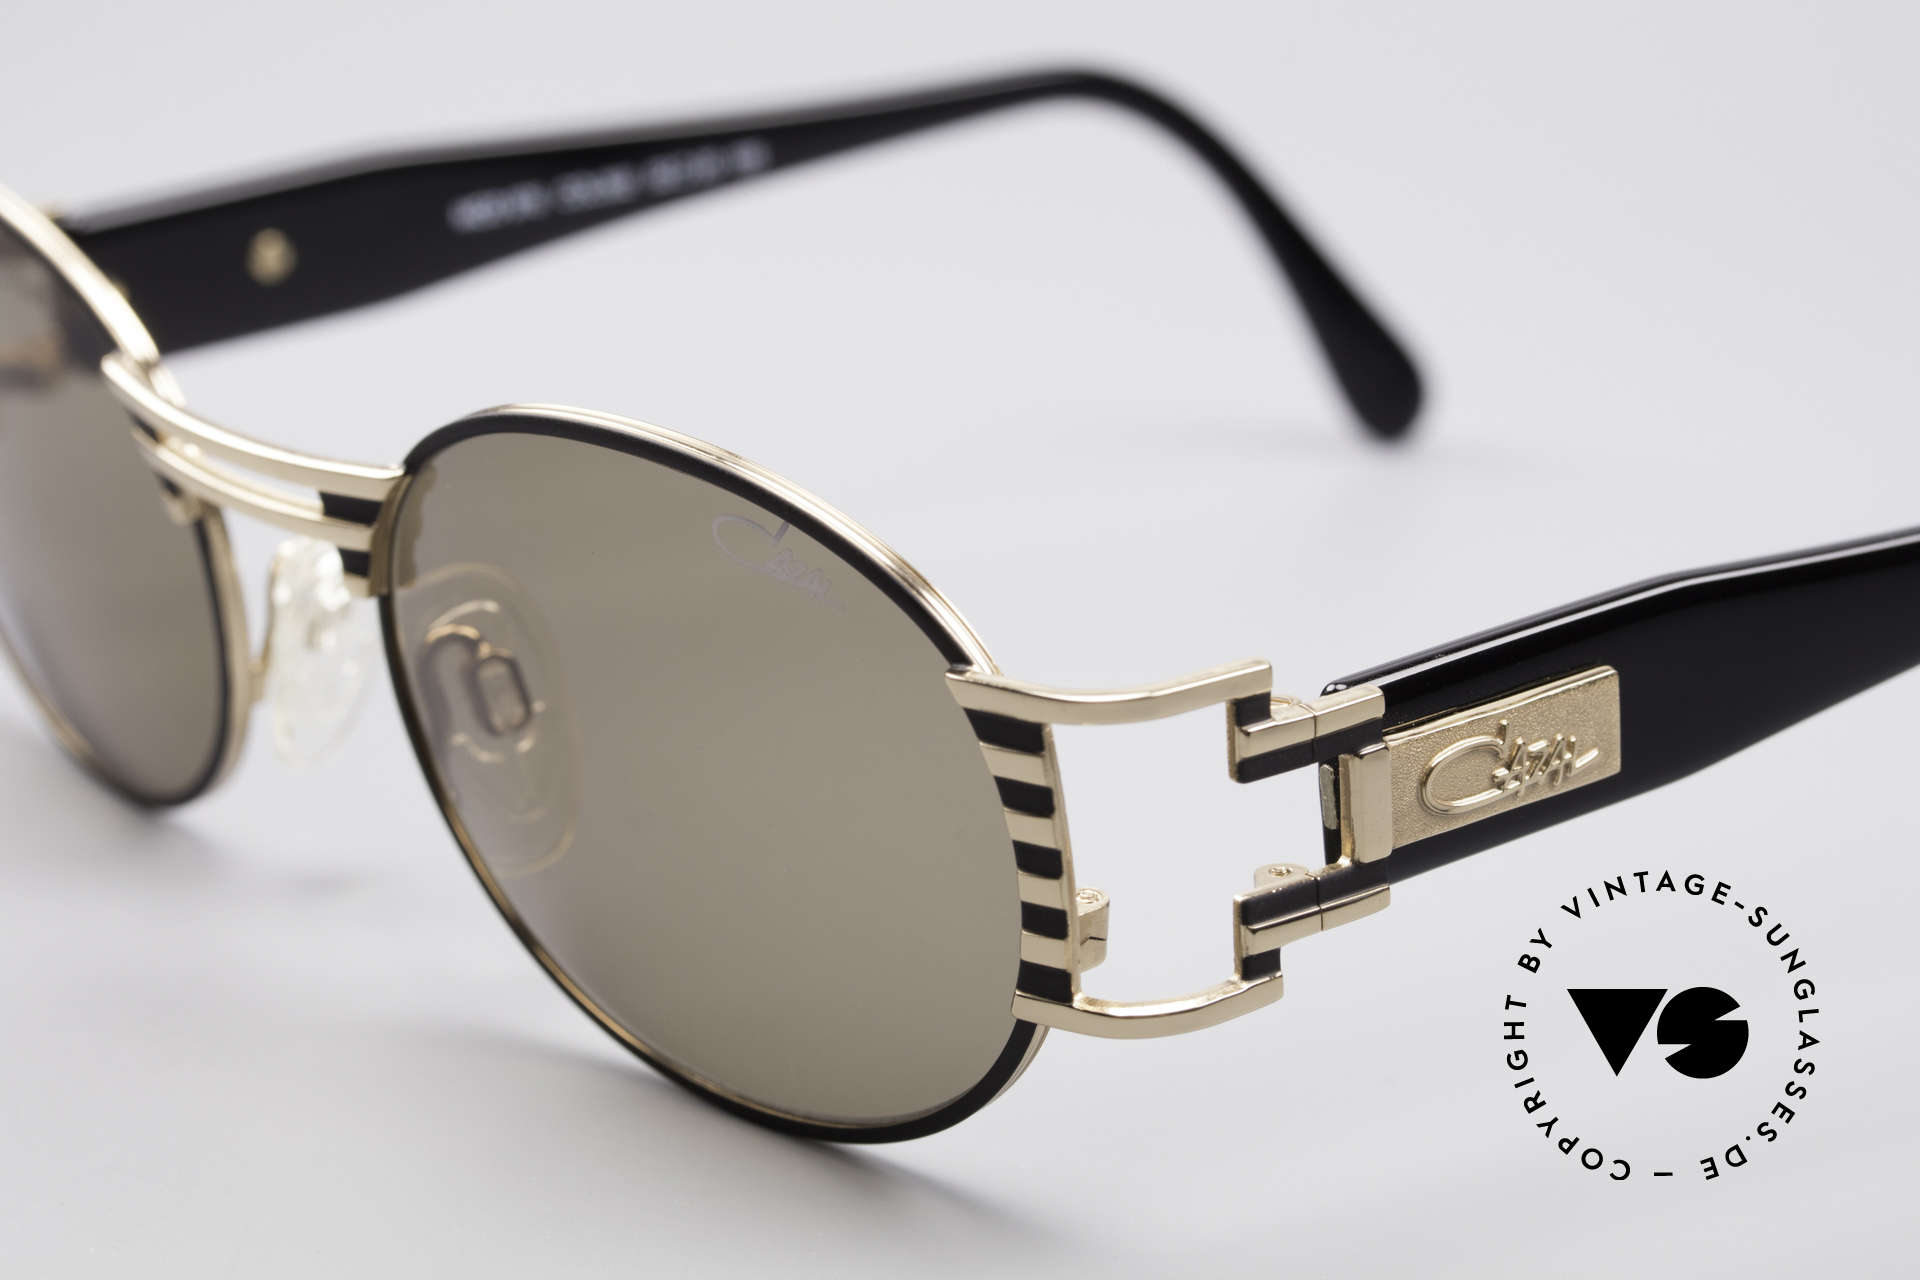 Cazal 976 90's Vintage Sunglasses Oval, original CAZAL lenses with 'UV Protection' mark, Made for Men and Women